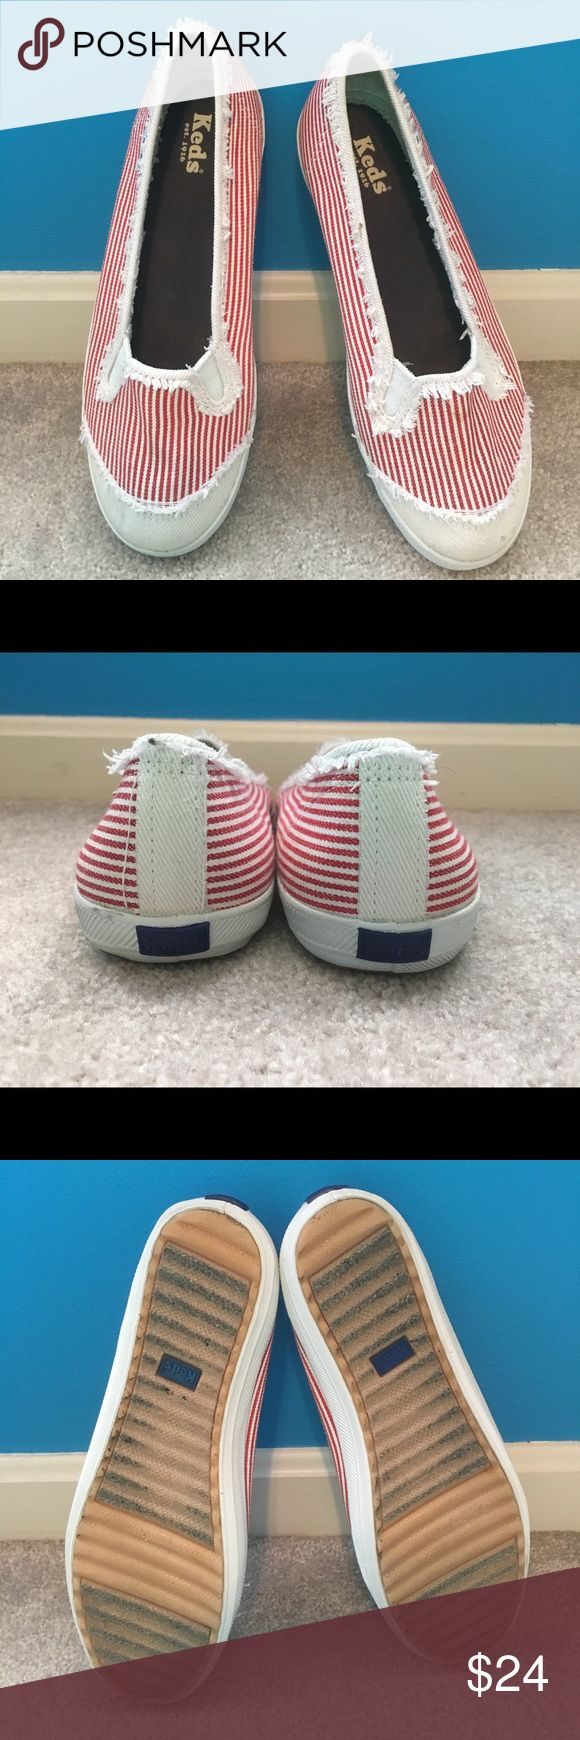 Red and white striped distressed looking slip ons! Keds slip on's that look great coming out of the washer and dryer! Be ready for spring and summer with these great shoes! I am listing them by the European size since they were bought in England. Keds Shoes Flats & Loafers